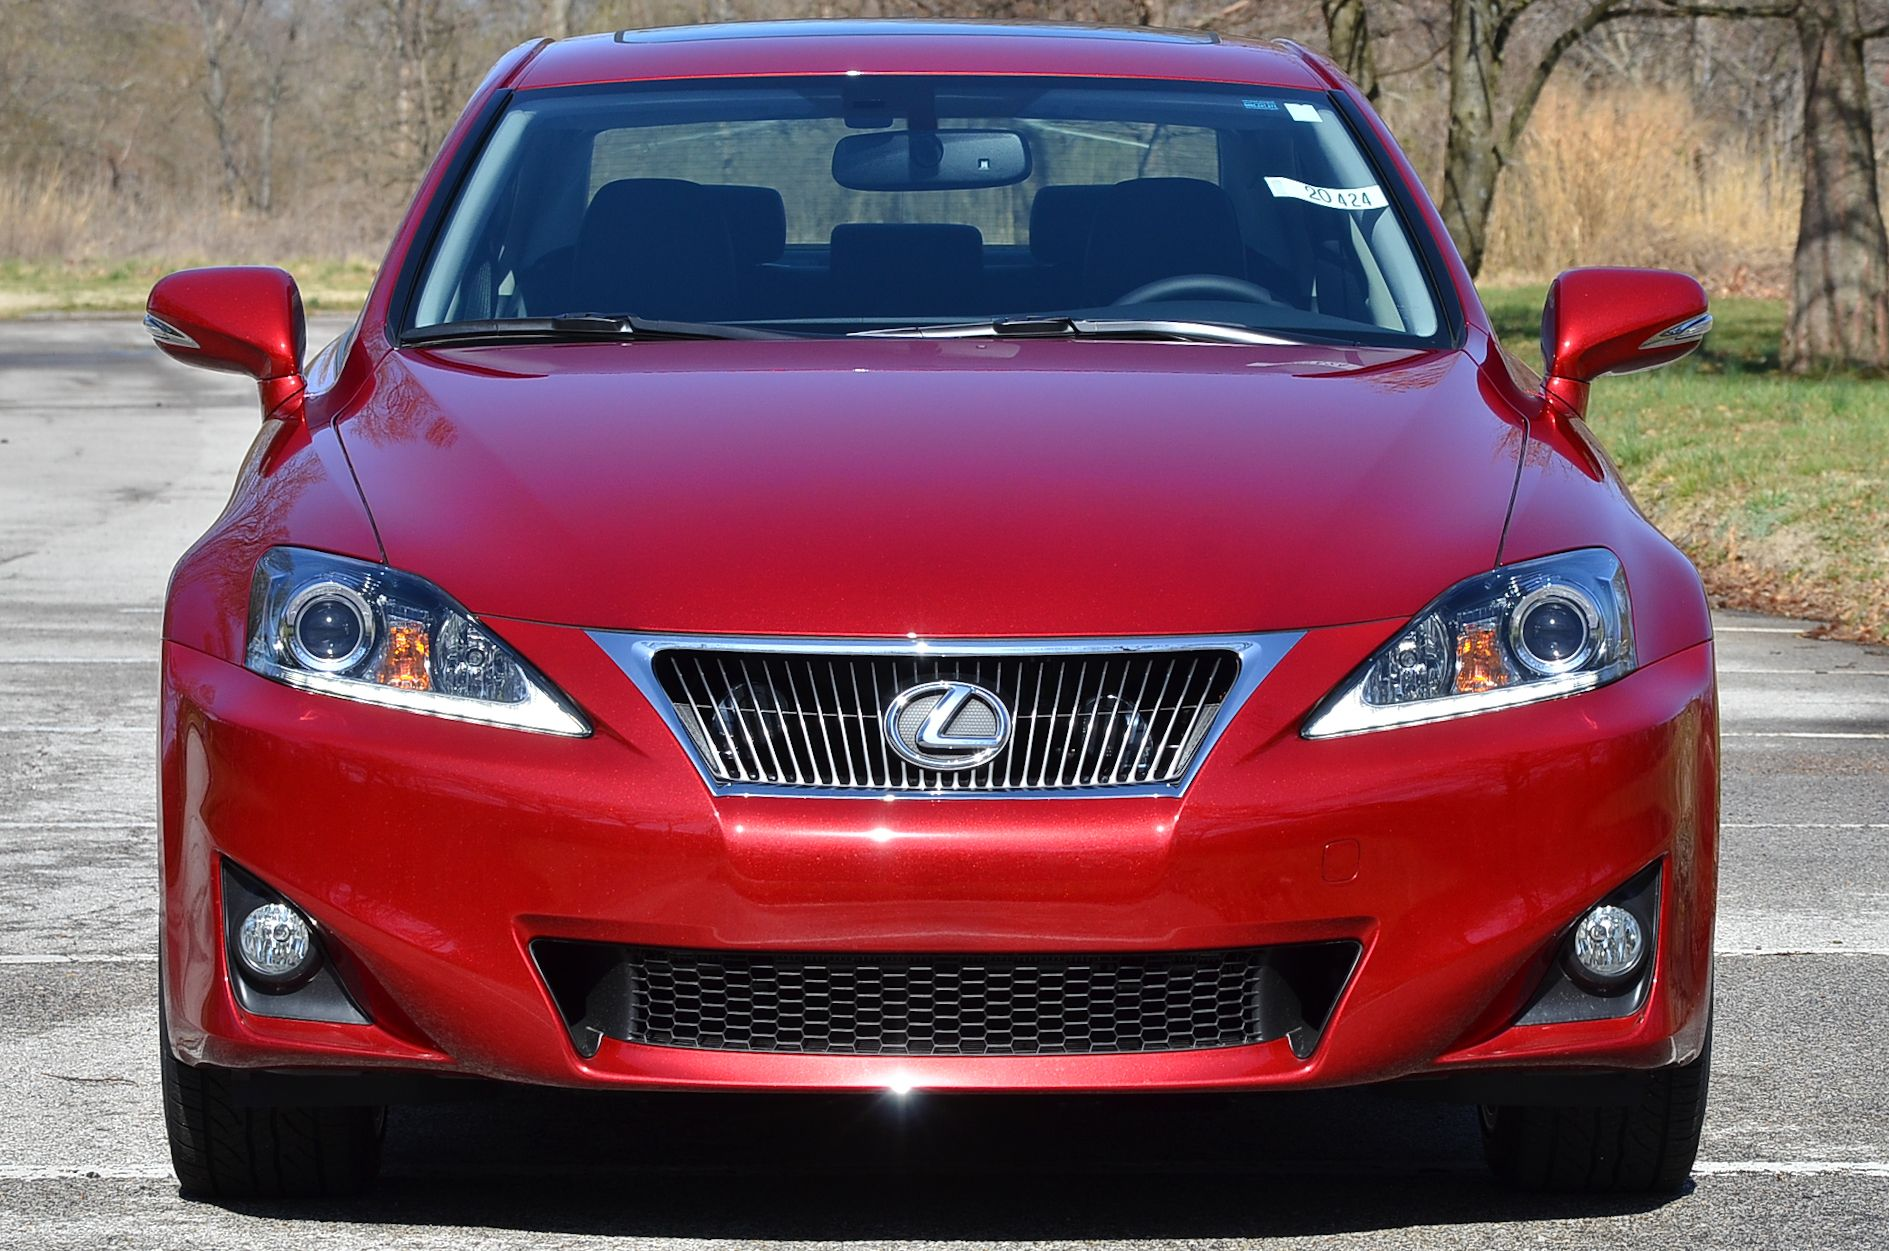 837e585371698913f35f70ad1ebb2c19 Great Description About 2012 Lexus Es with Fascinating Images Cars Review